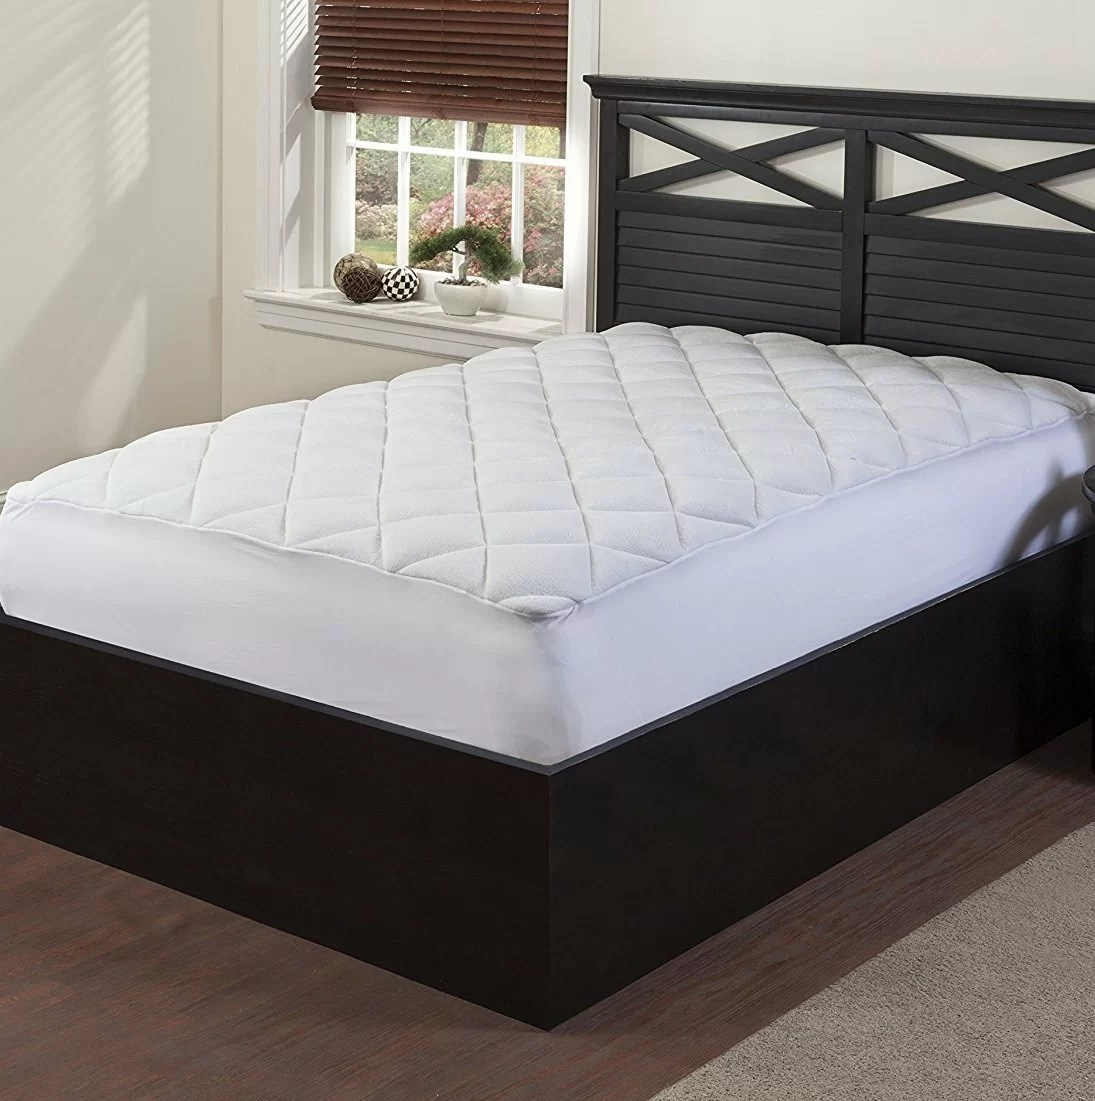 Double Bed Mattress Cover Double Puff Mattress Topper